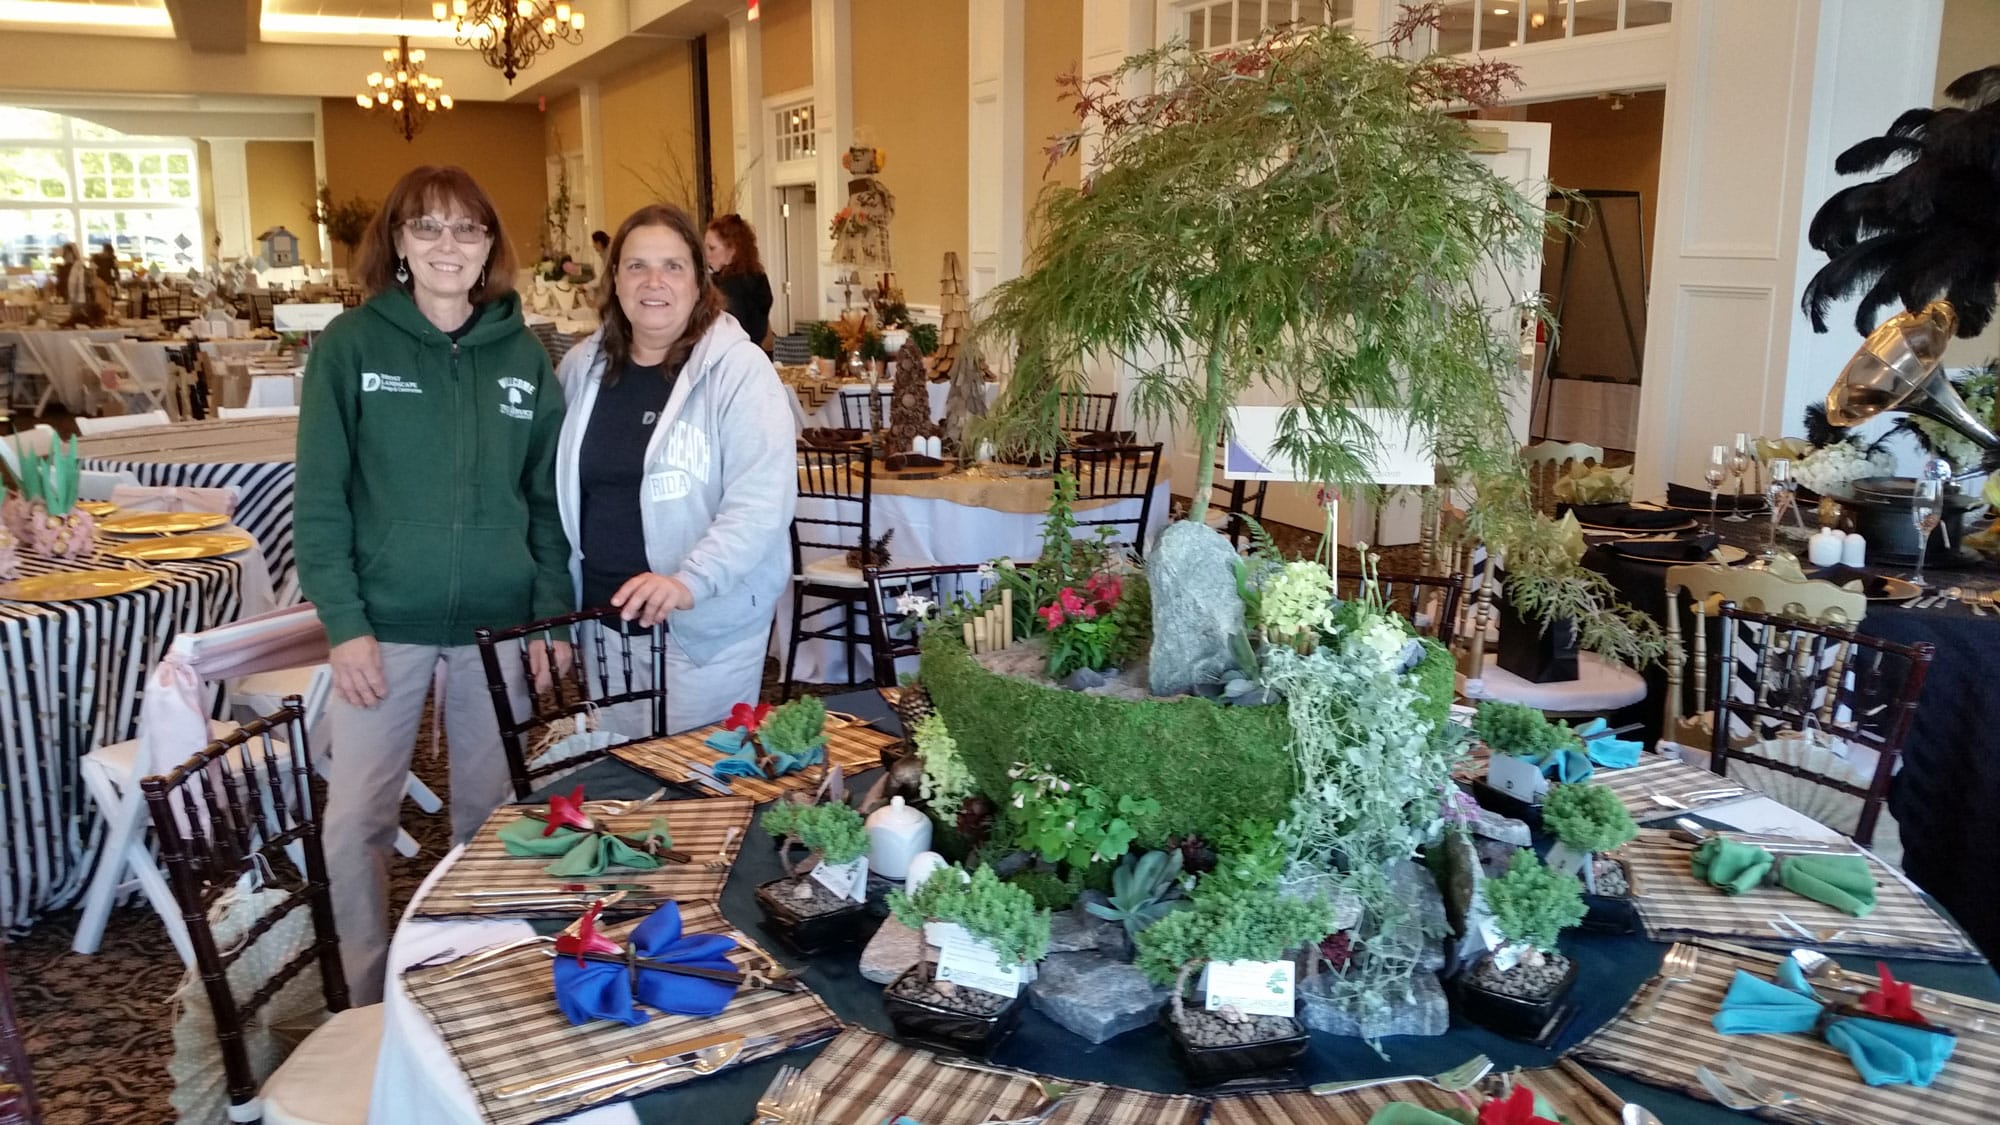 community involvement photo - arbor arrangement centerpiece and table setting